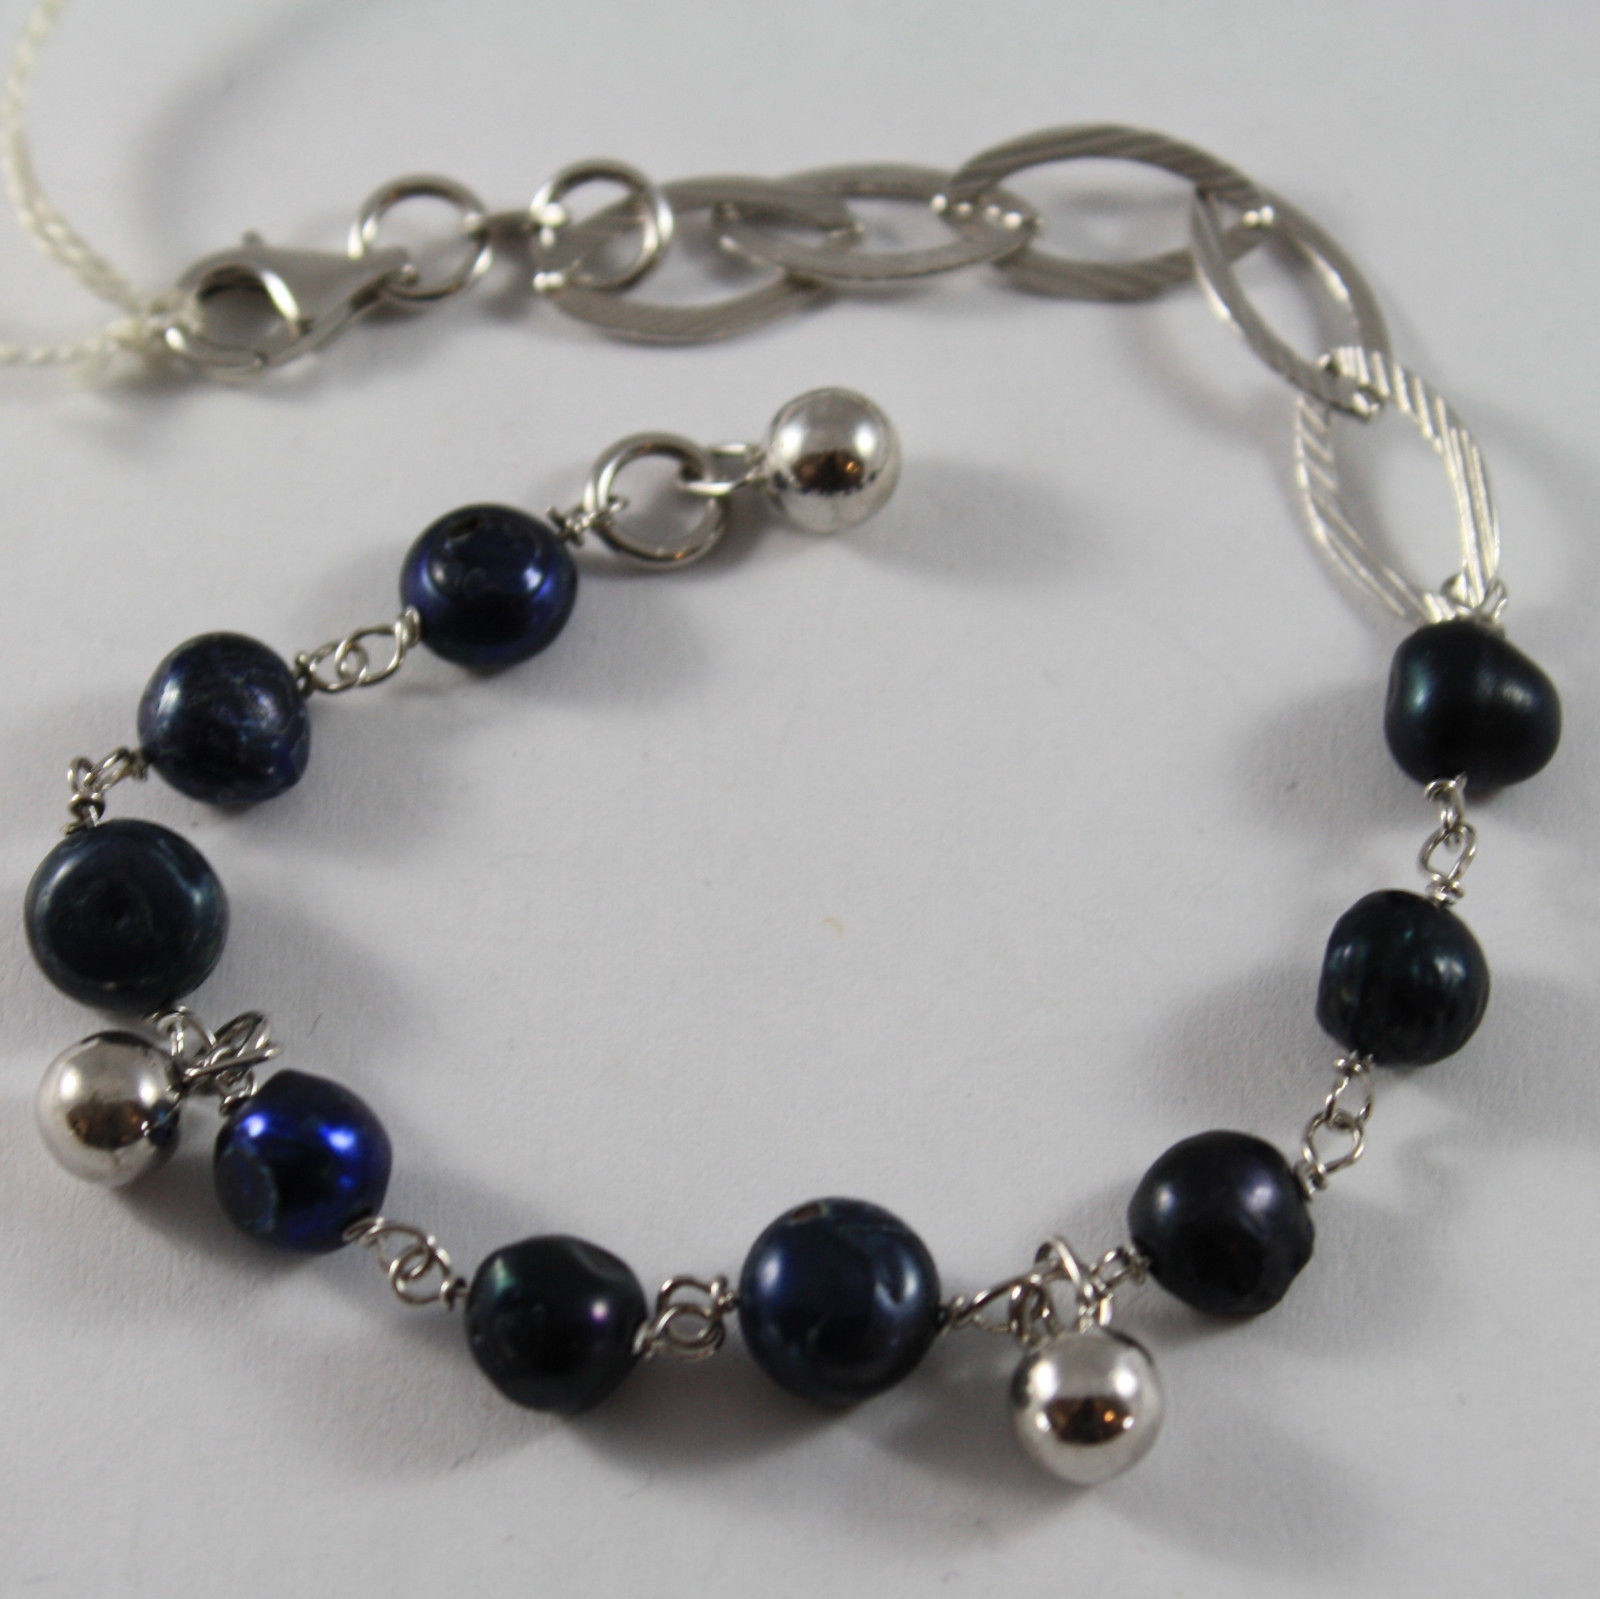 .925 RHODIUM SILVER BRACELET WITH BLUE PEARLS AND SILVER SPHERE